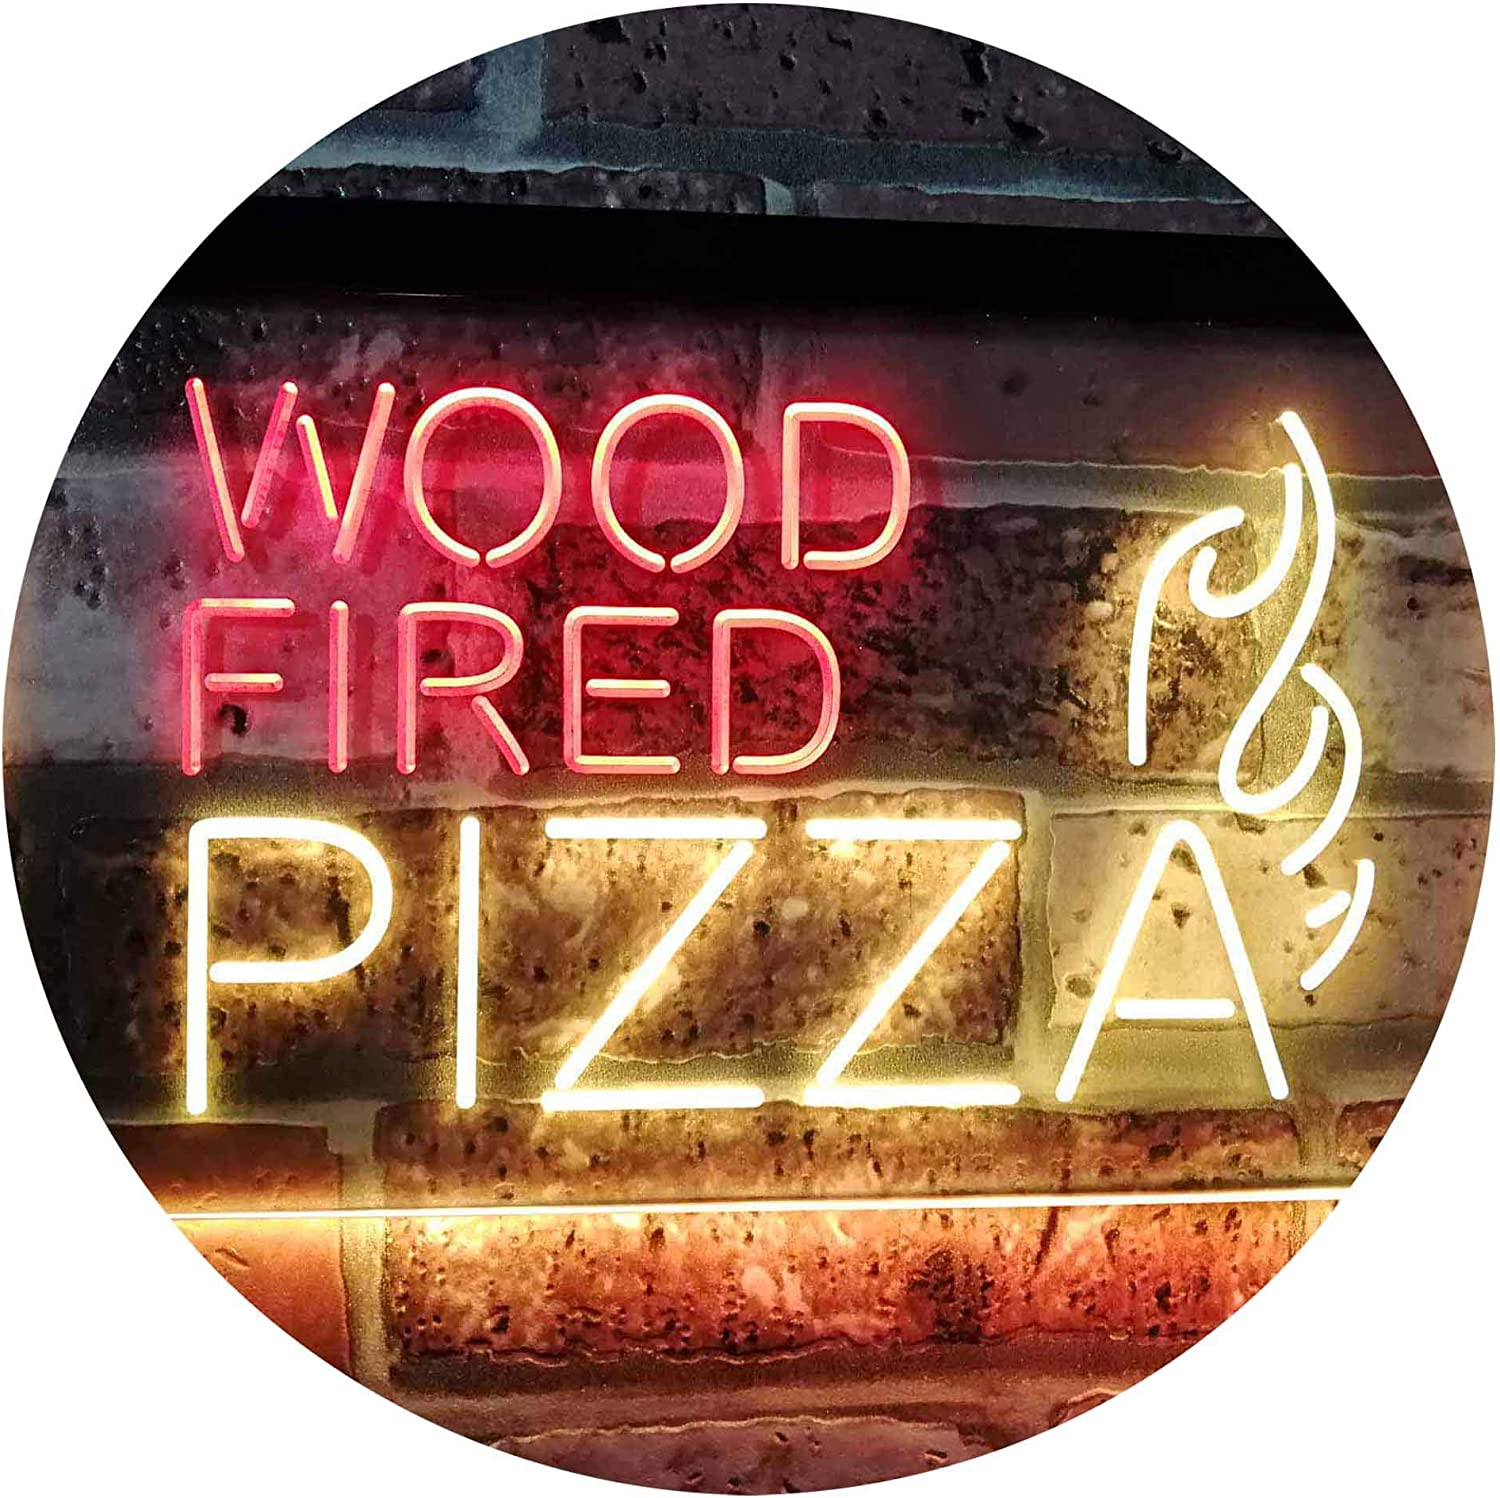 ADVPRO Wood Fired Pizza Dual Color Gorgeous Sign LED 24 Neon Yellow Ranking TOP16 Red